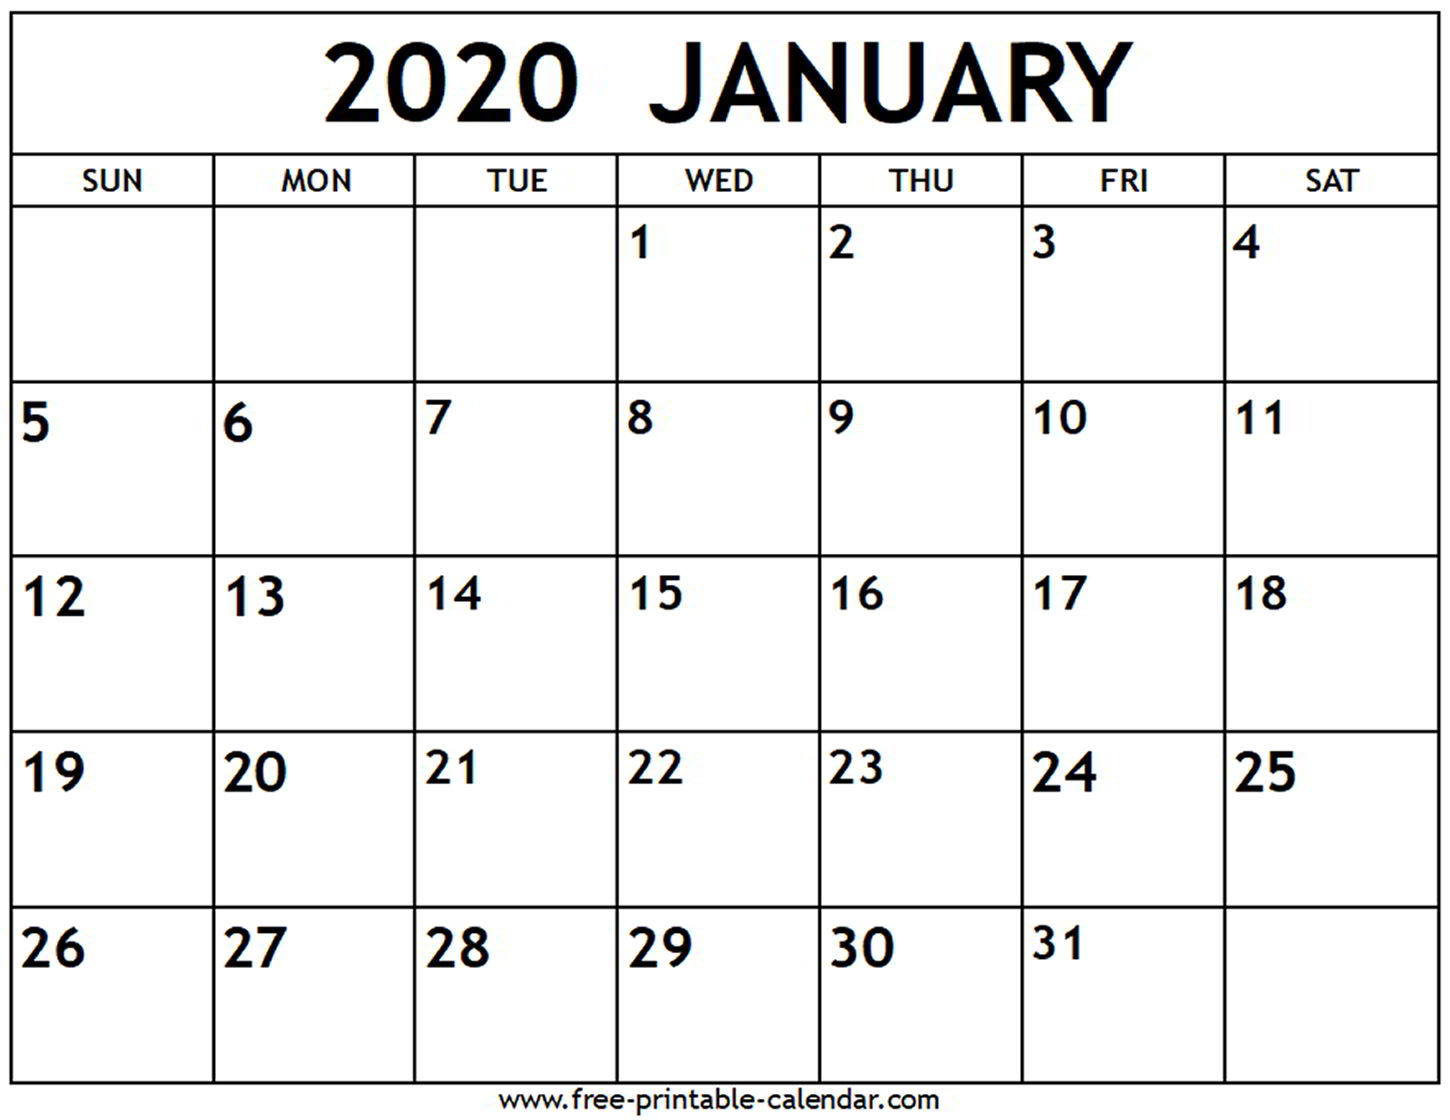 January 2020 Calendar  Freeprintablecalendar within January 2020 Printable Calendar